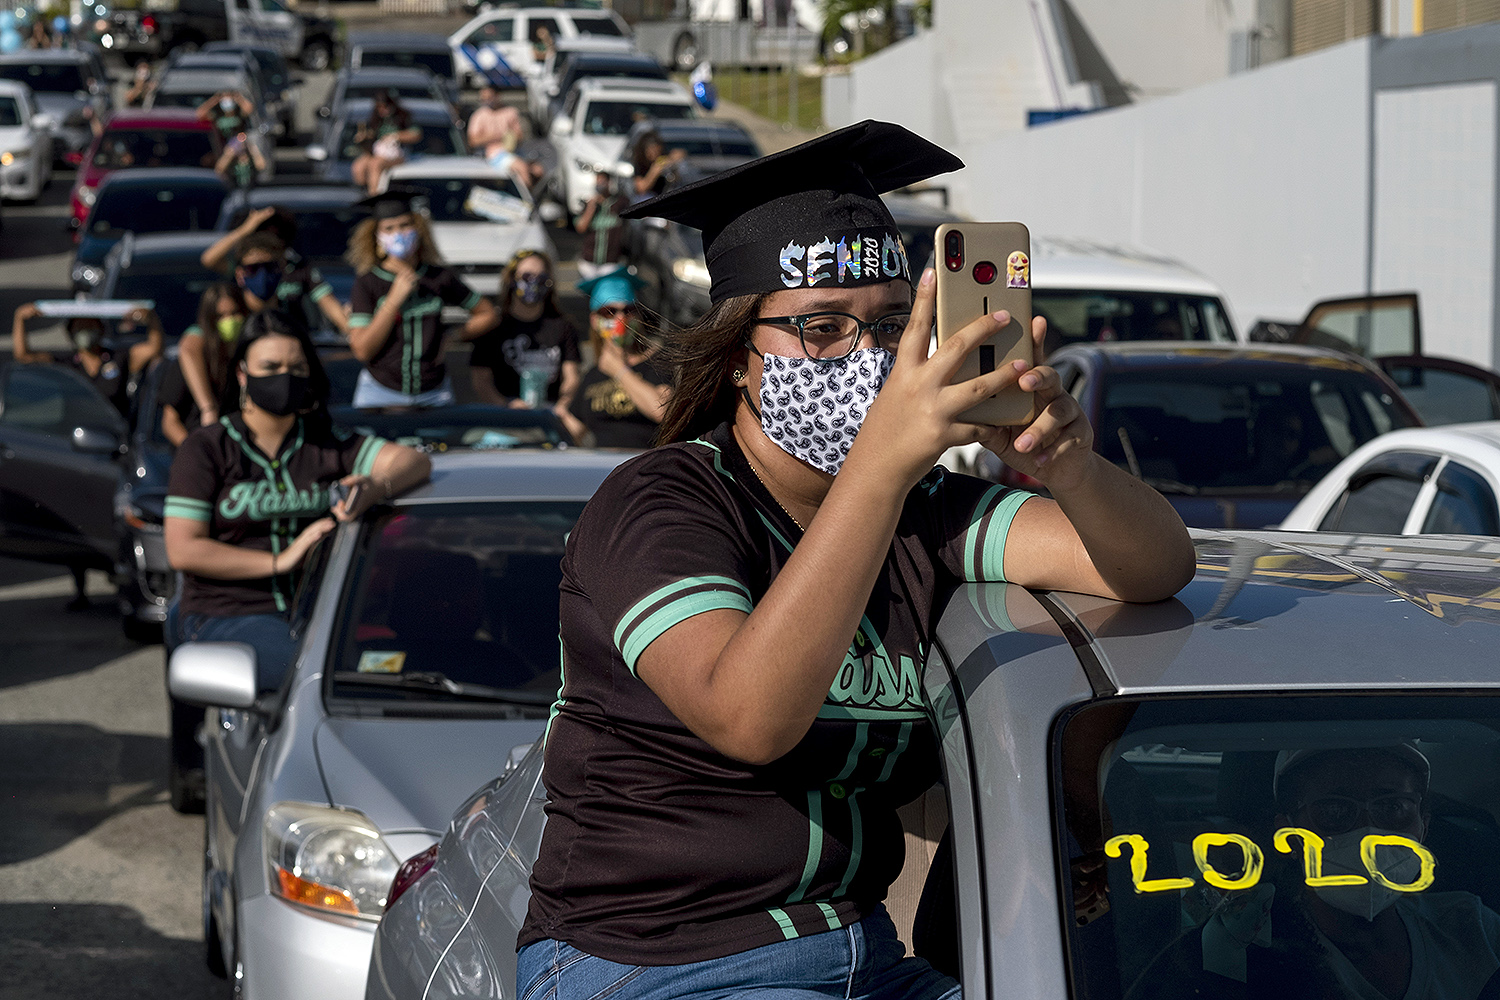 Graduating students from Ramon Power Y Giralt High School take part in a symbolic ceremony from their cars in a parking lot in Las Piedras, Puerto Rico, on May 13. RICARDO ARDUENGO/AFP via Getty Images